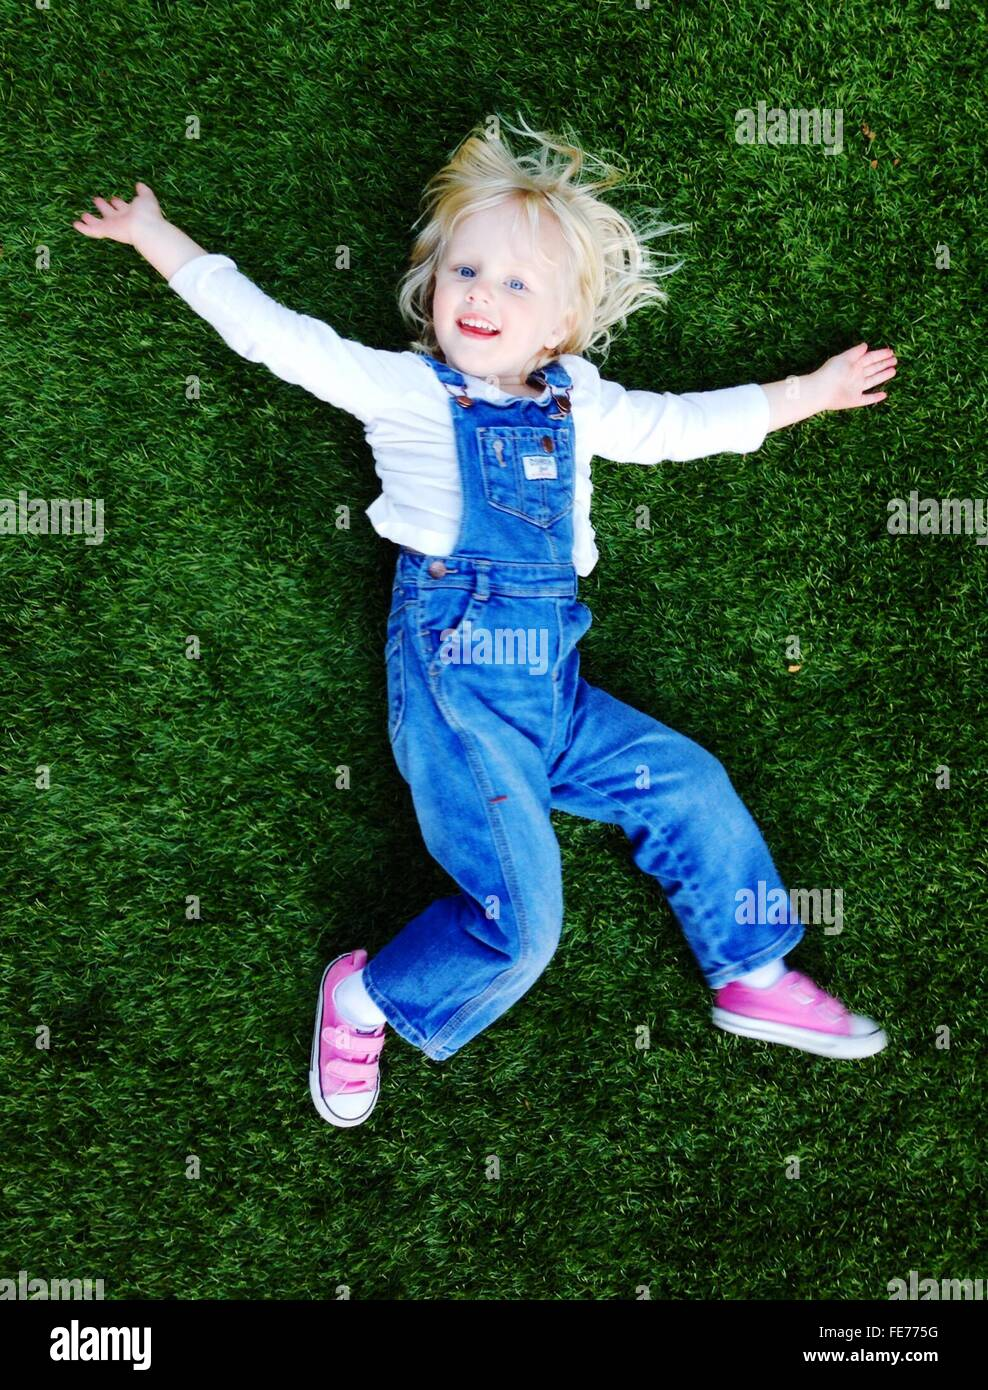 High Angle Portrait Of Smiling Cute Girl Relaxing On Grassy Field Stock Photo